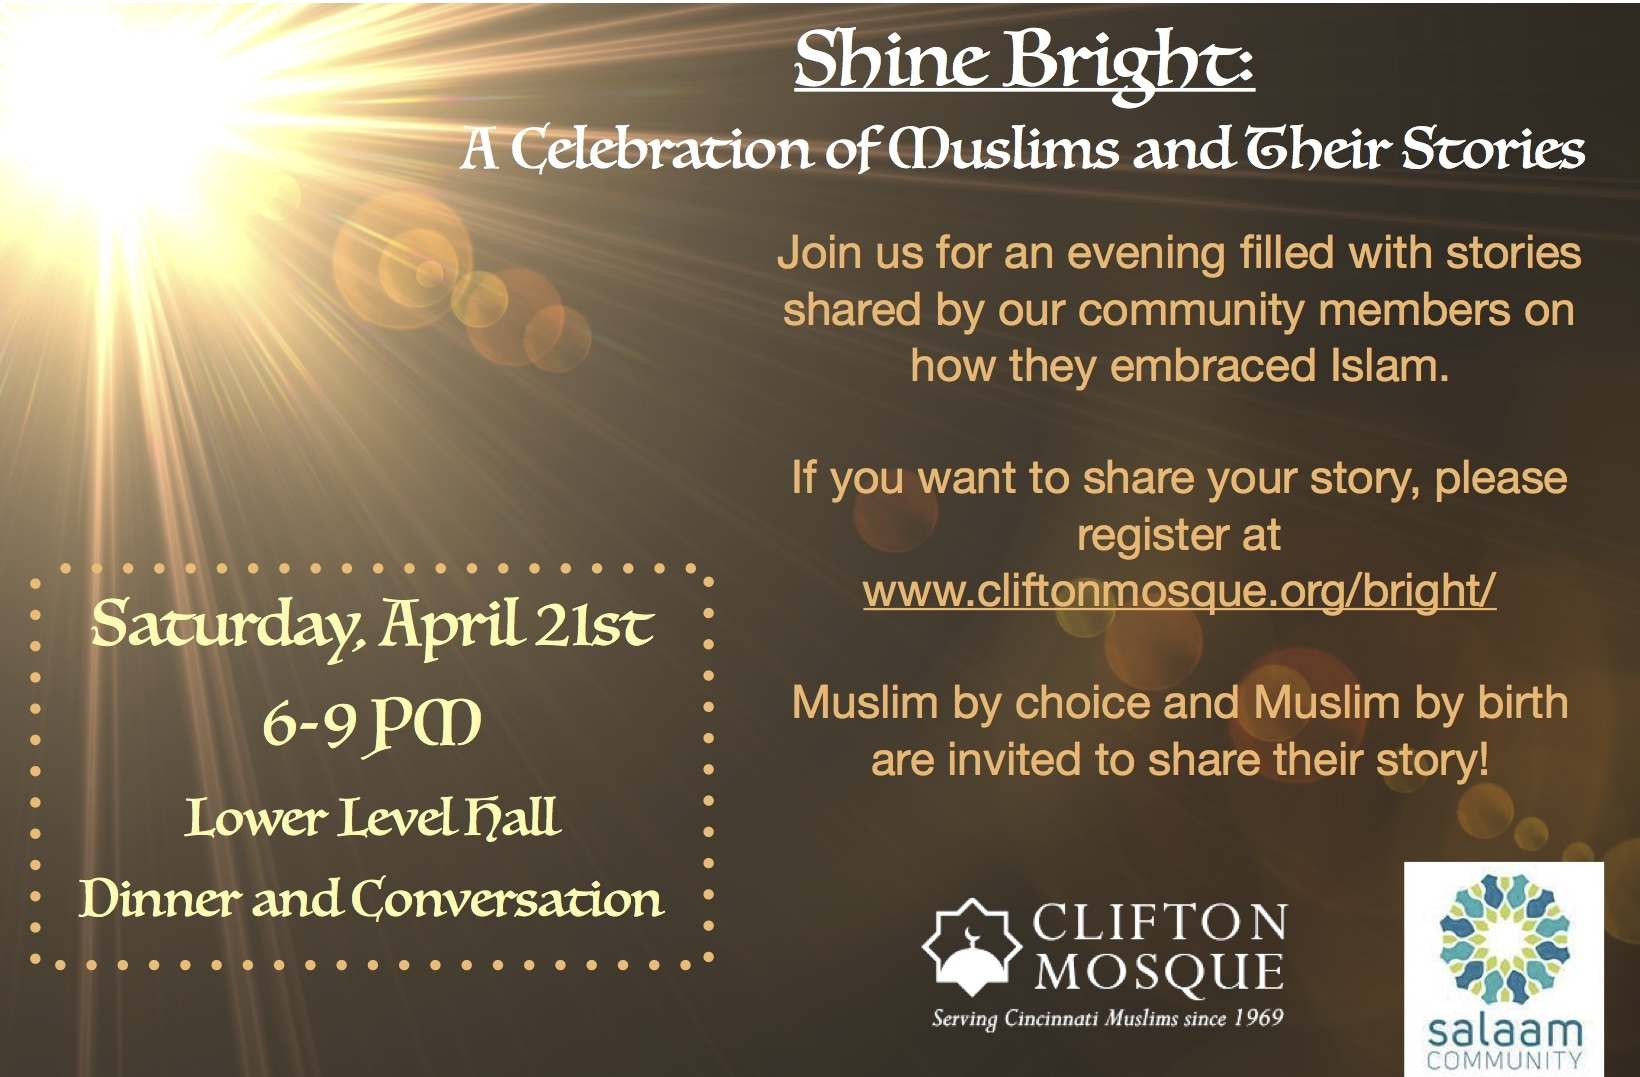 Register at www.cliftonmosque.org/bright/ if you want to tell your story at the event.